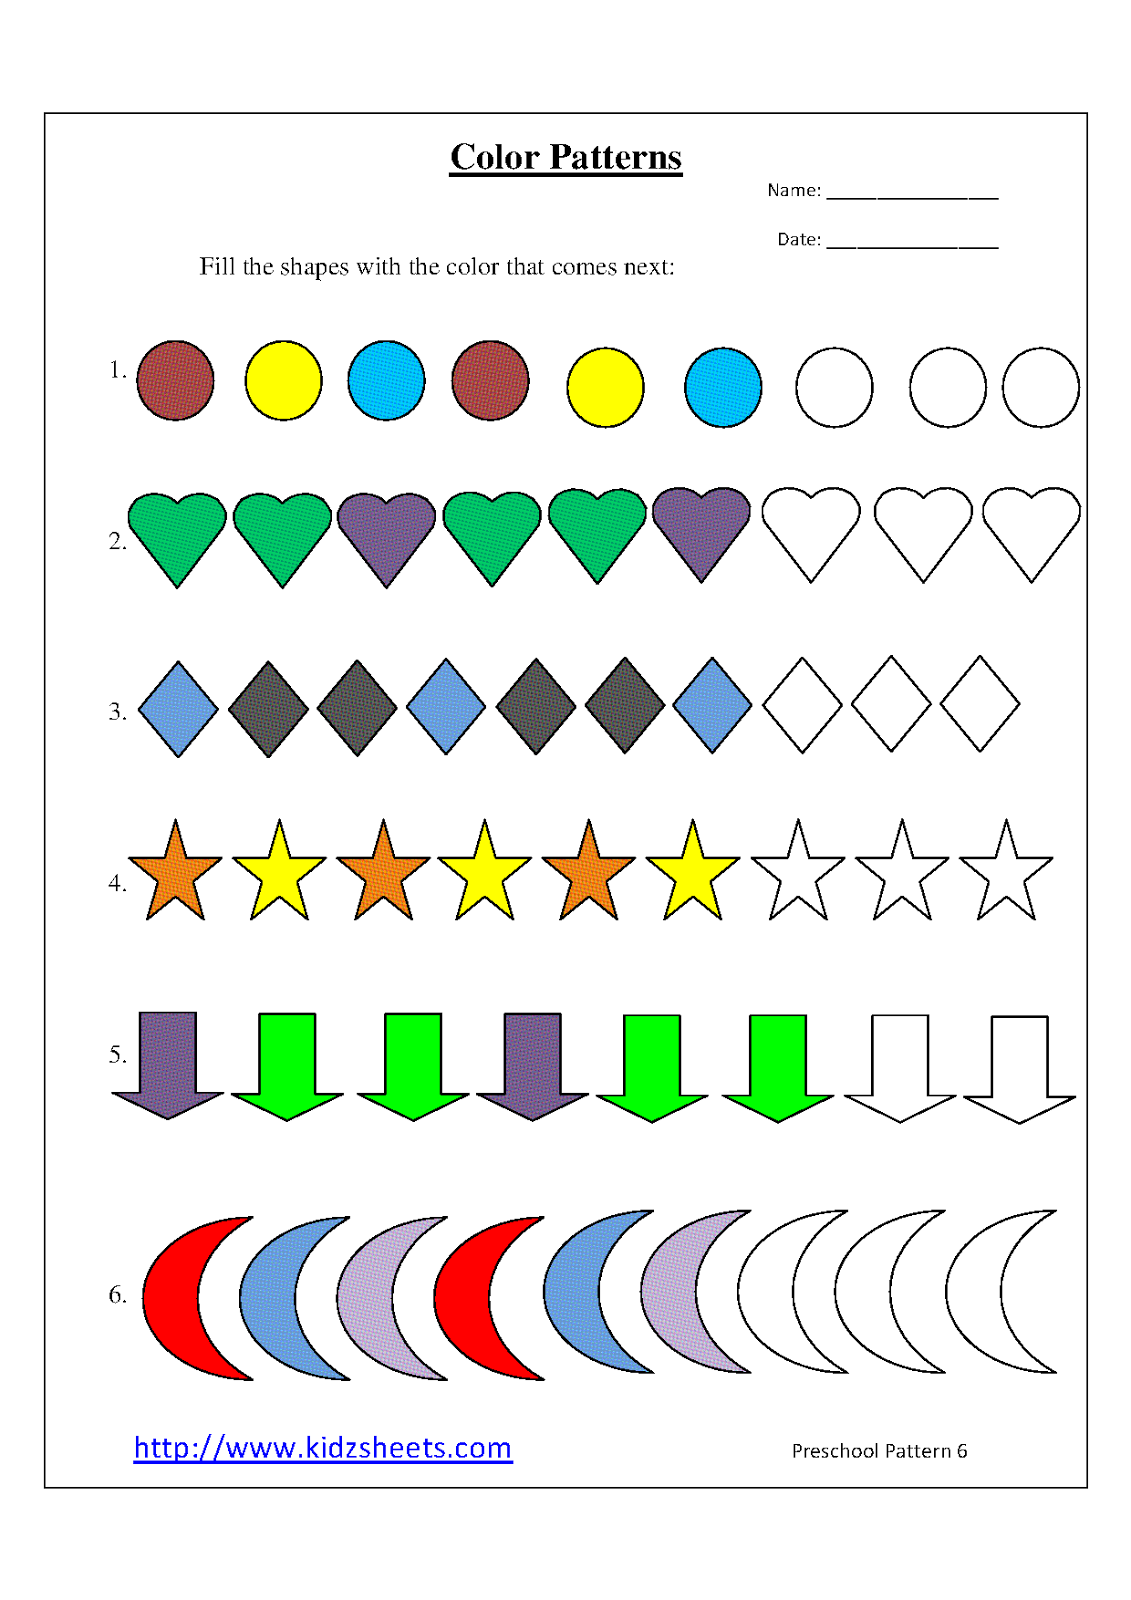 Worksheets Preschool Pattern Worksheets kidz worksheets preschool color patterns worksheet6 patterns